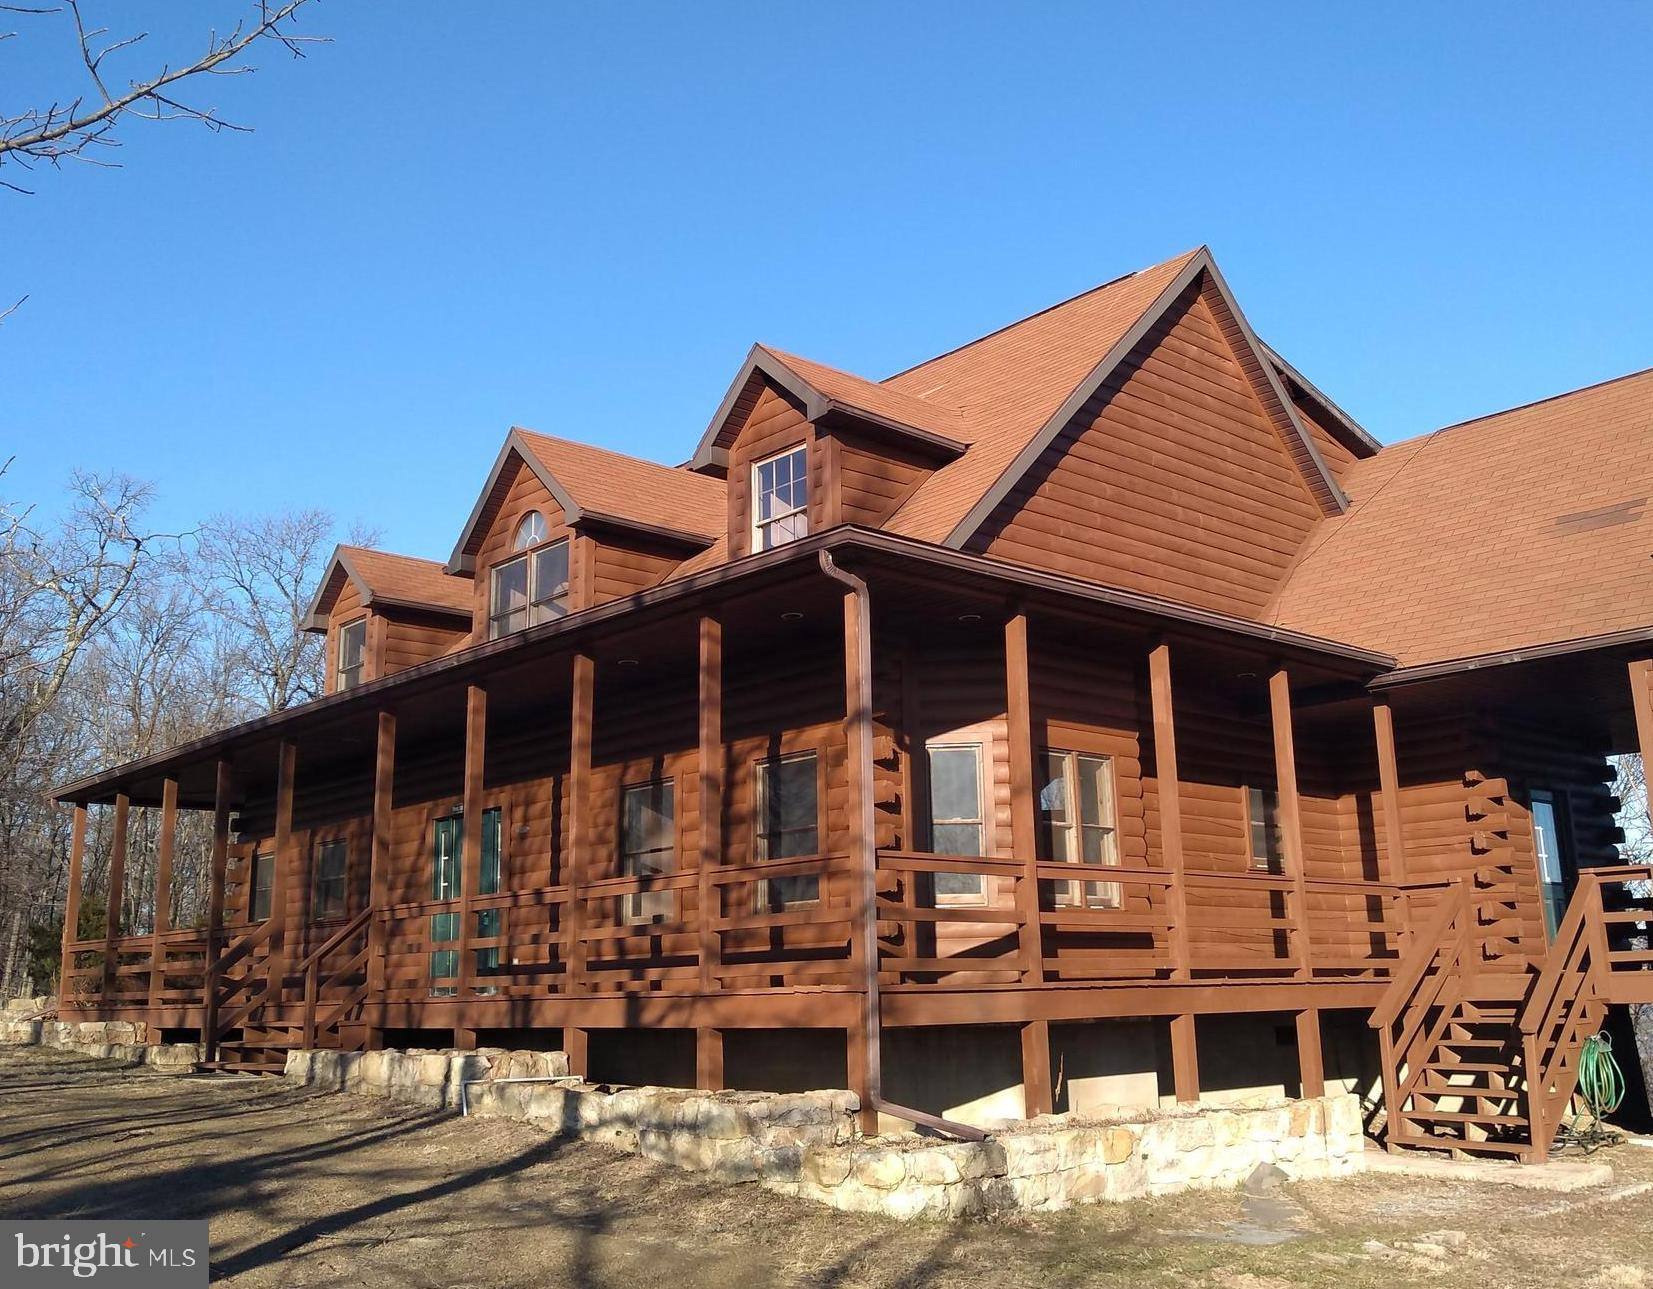 1292 PEAKS VIEW DRIVE, YELLOW SPRING, WV 26865